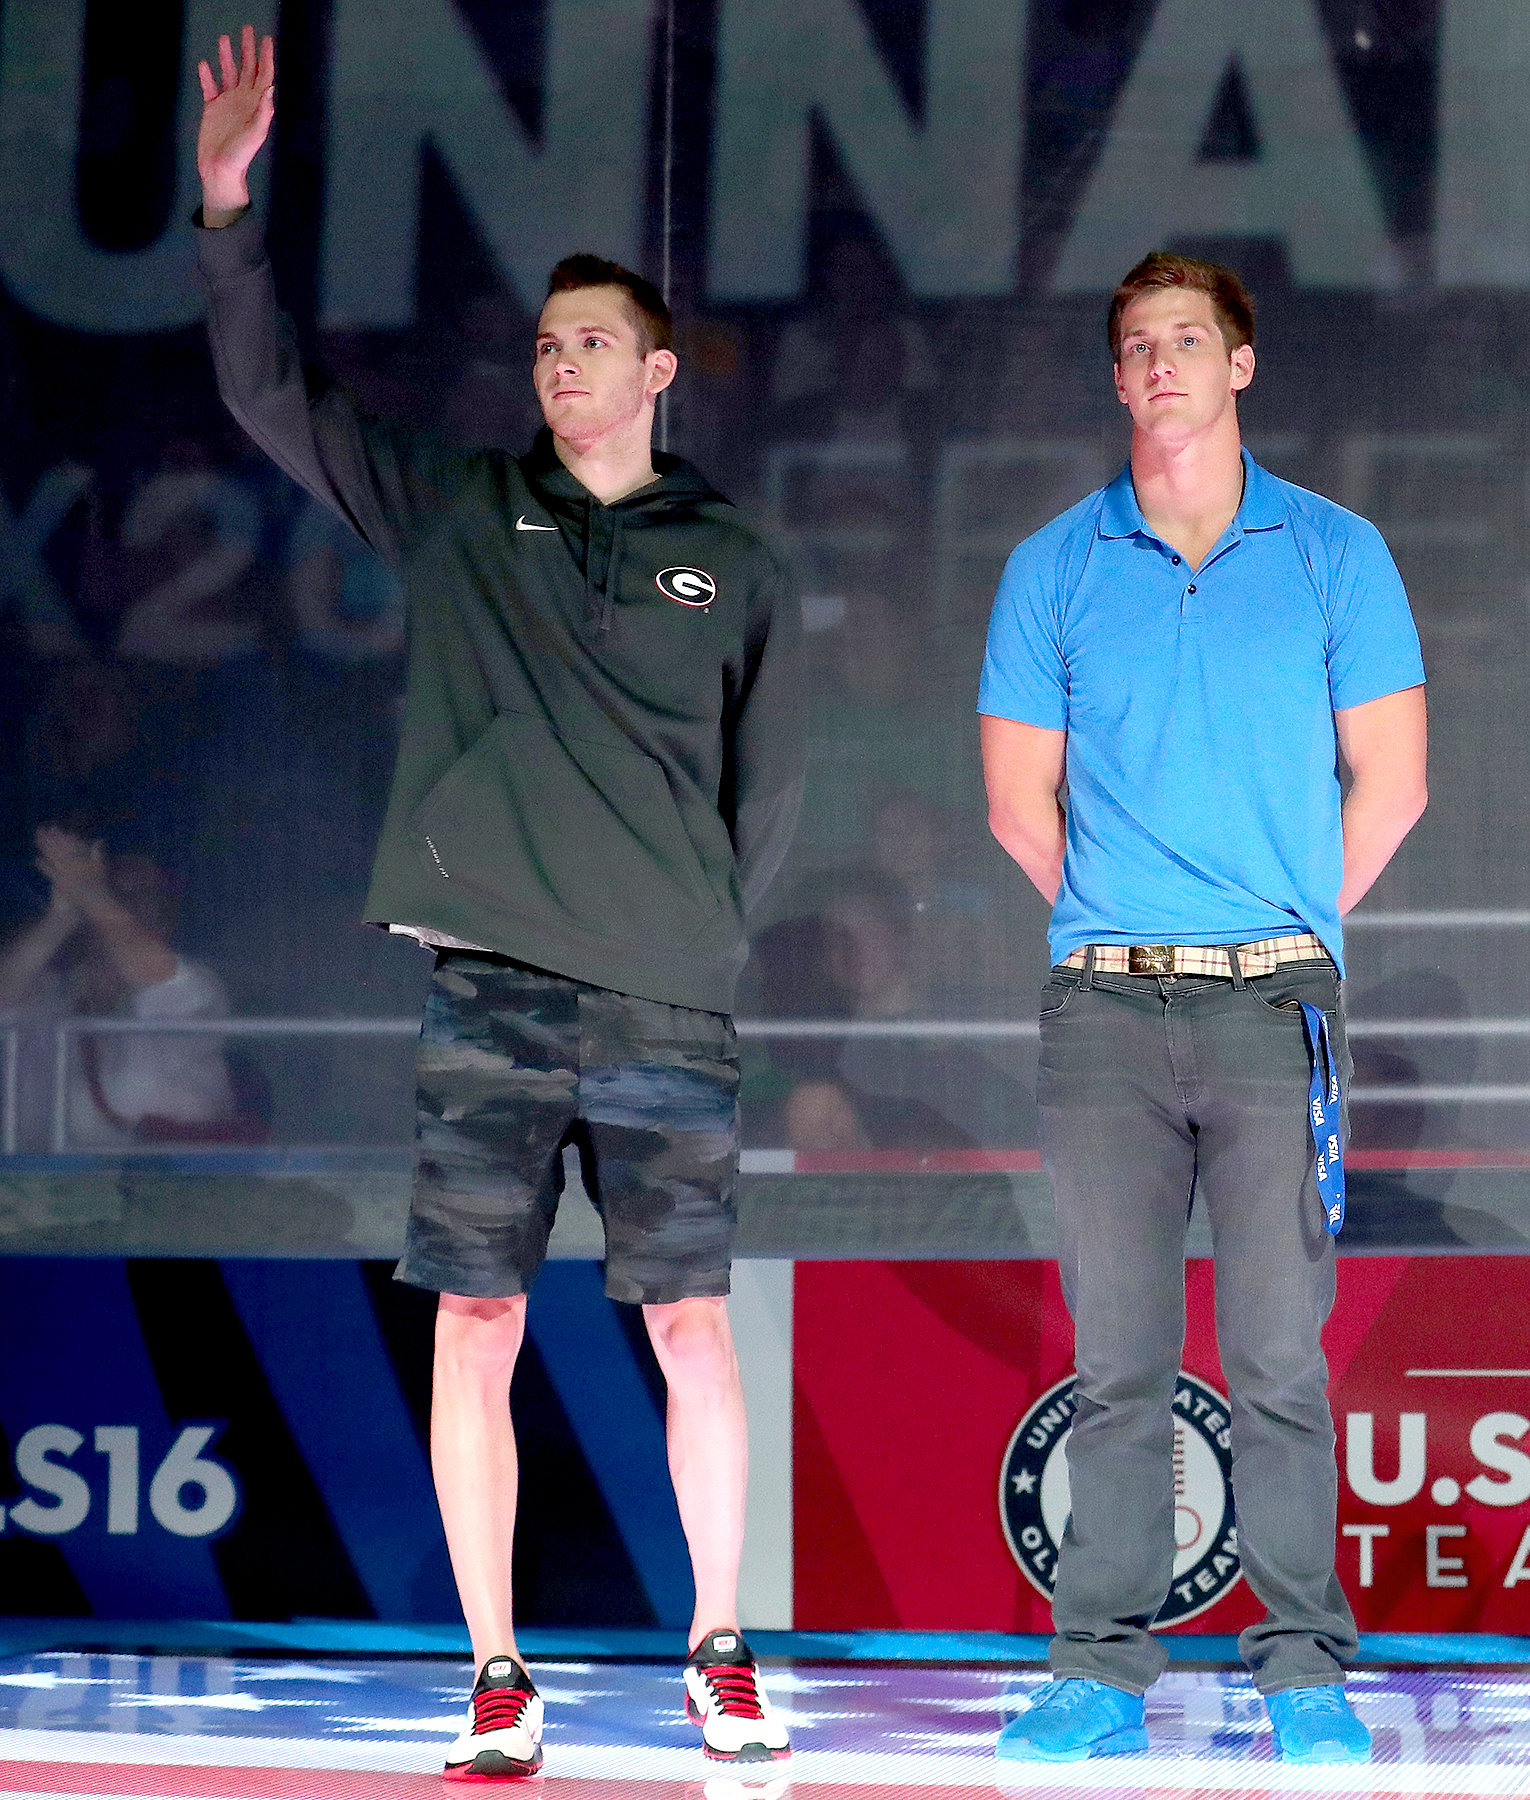 Gunnar Bentz and Jimmy Feigen of the United States participate in the medal ceremony during Day Eight of the 2016 U.S. Olympic Team Swimming Trials at CenturyLink Center on July 3, 2016 in Omaha, Nebraska.